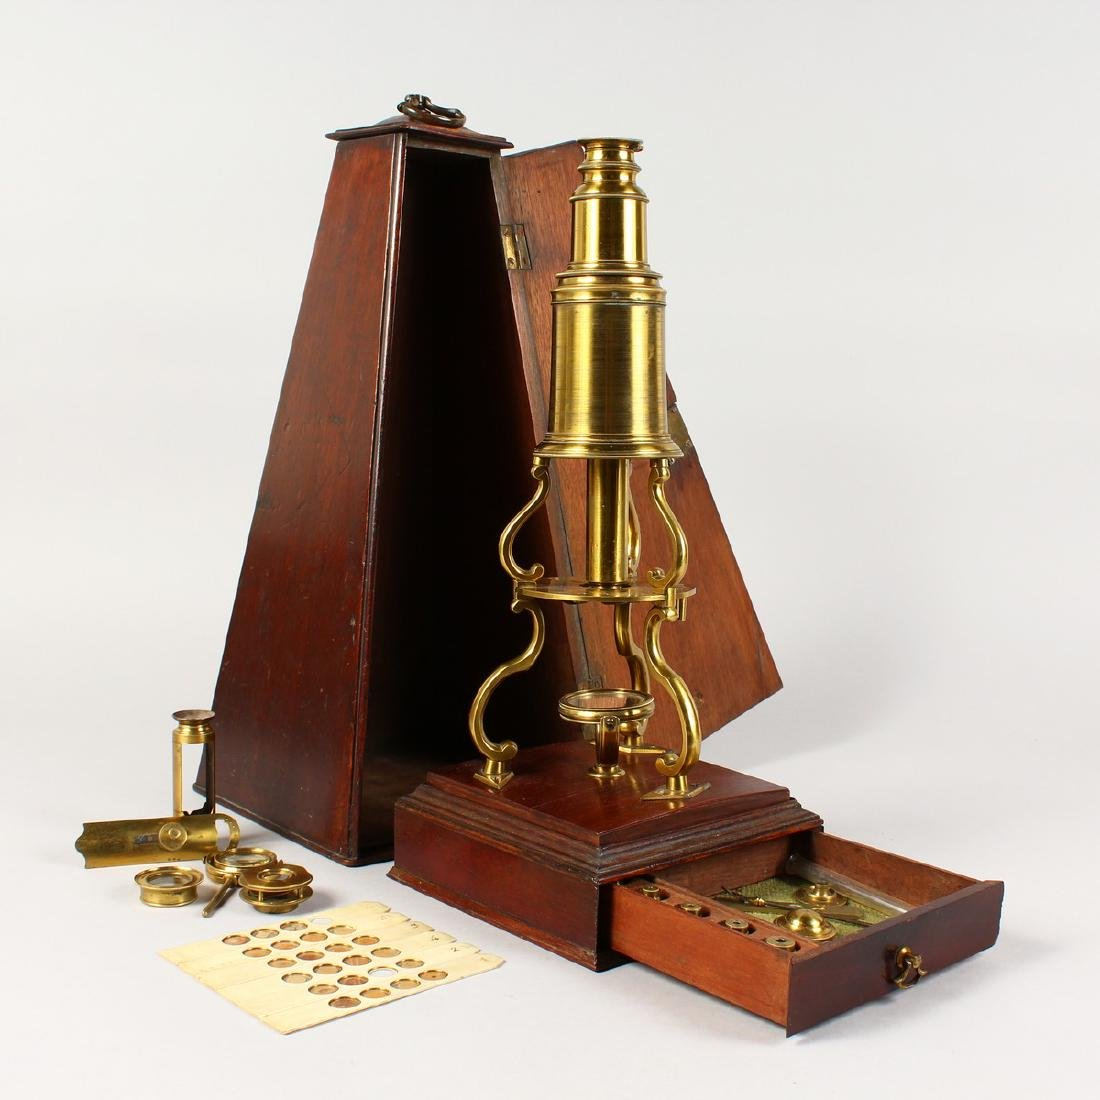 AN 18TH CENTURY BRASS CULPEPER MICROSCOPE by LINCOLN,